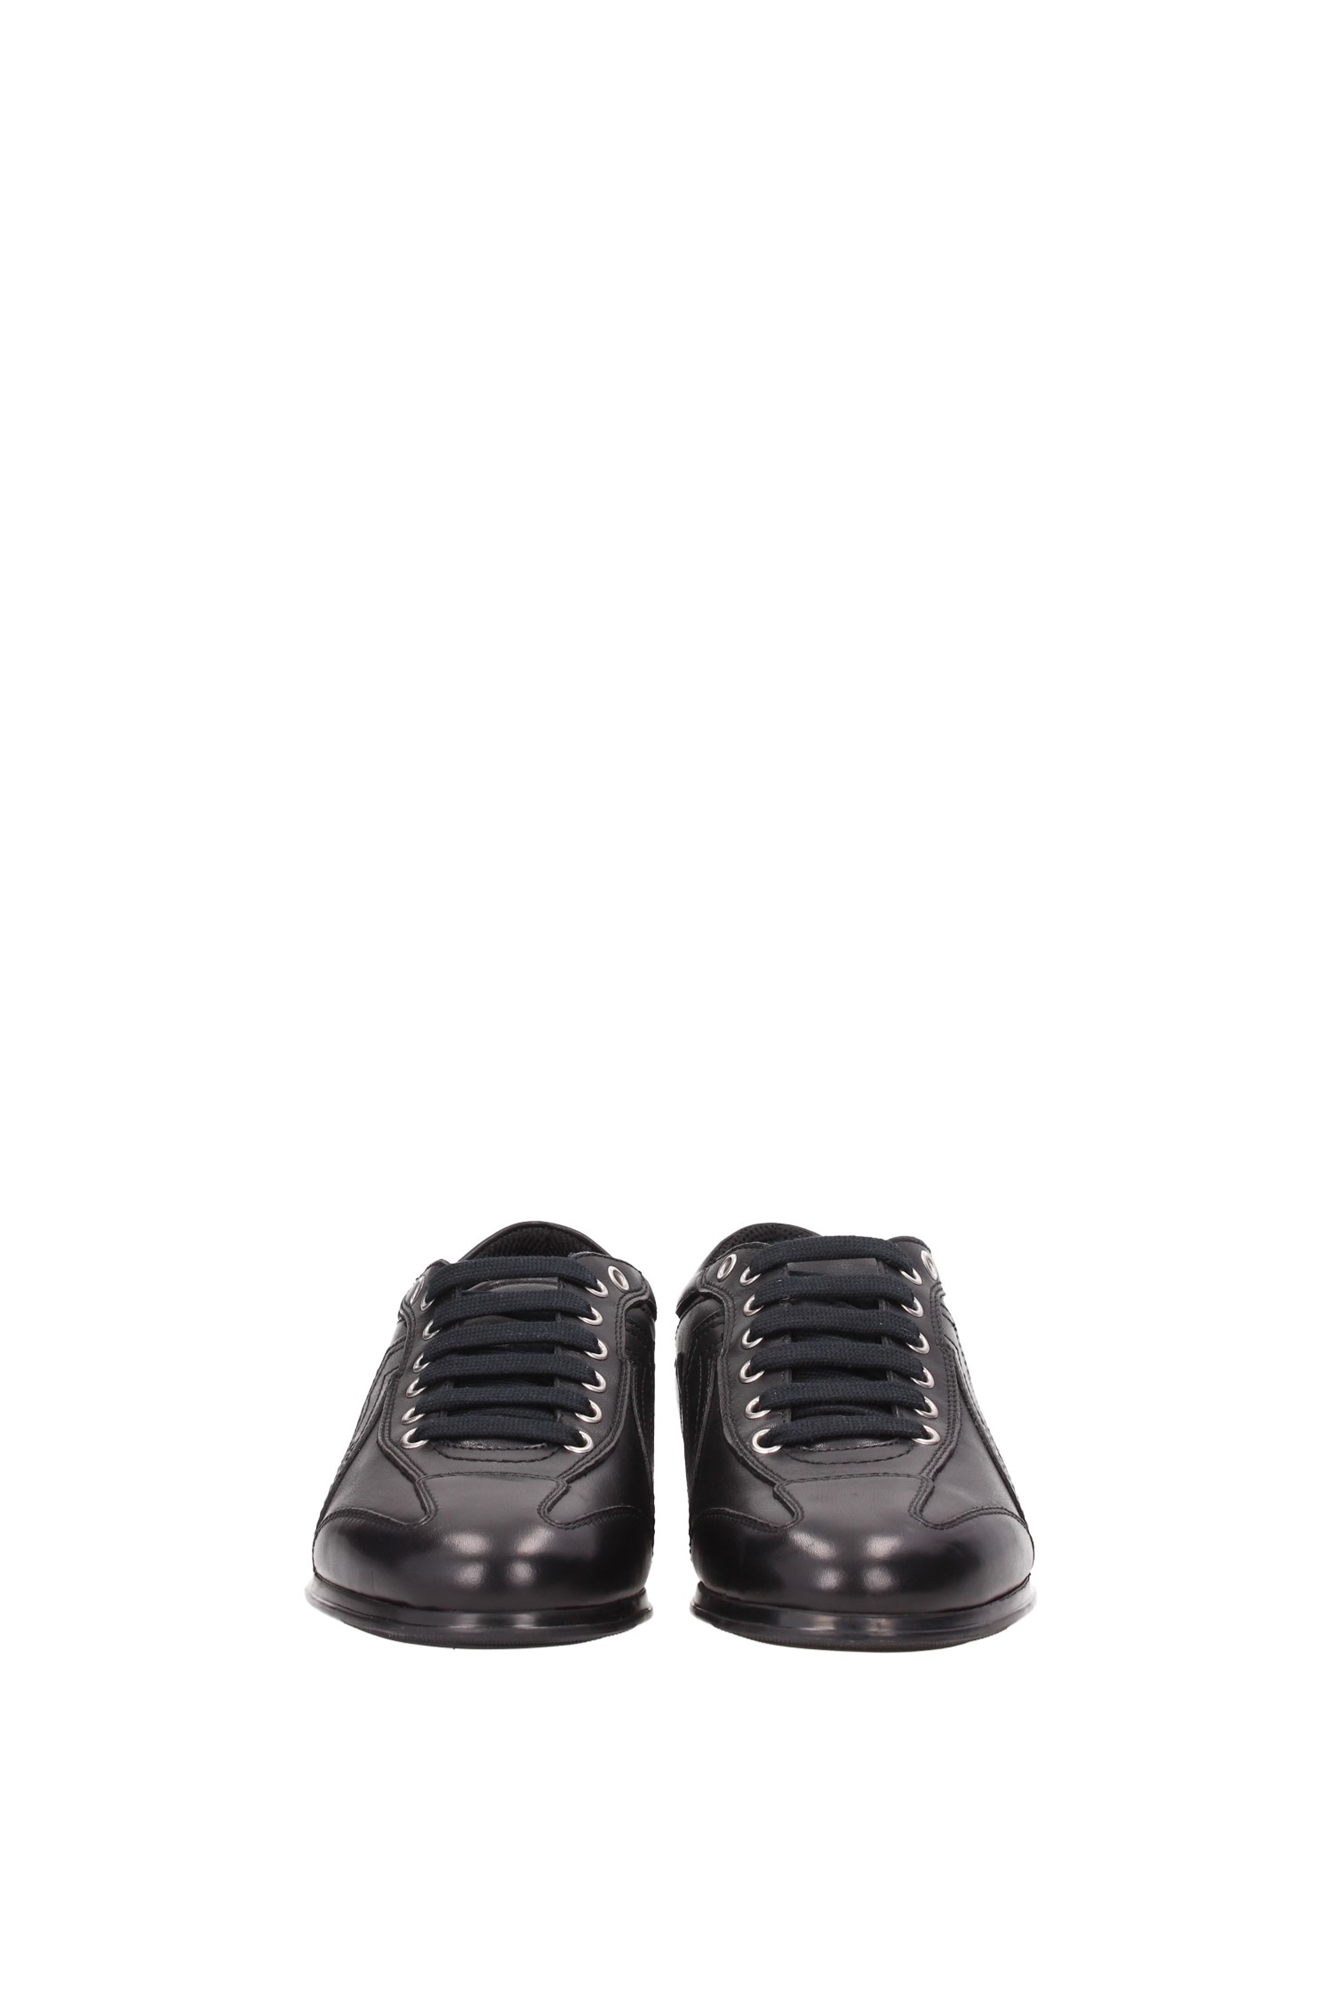 sneakers salvatore ferragamo herren leder schwarz mille0514672 ebay. Black Bedroom Furniture Sets. Home Design Ideas